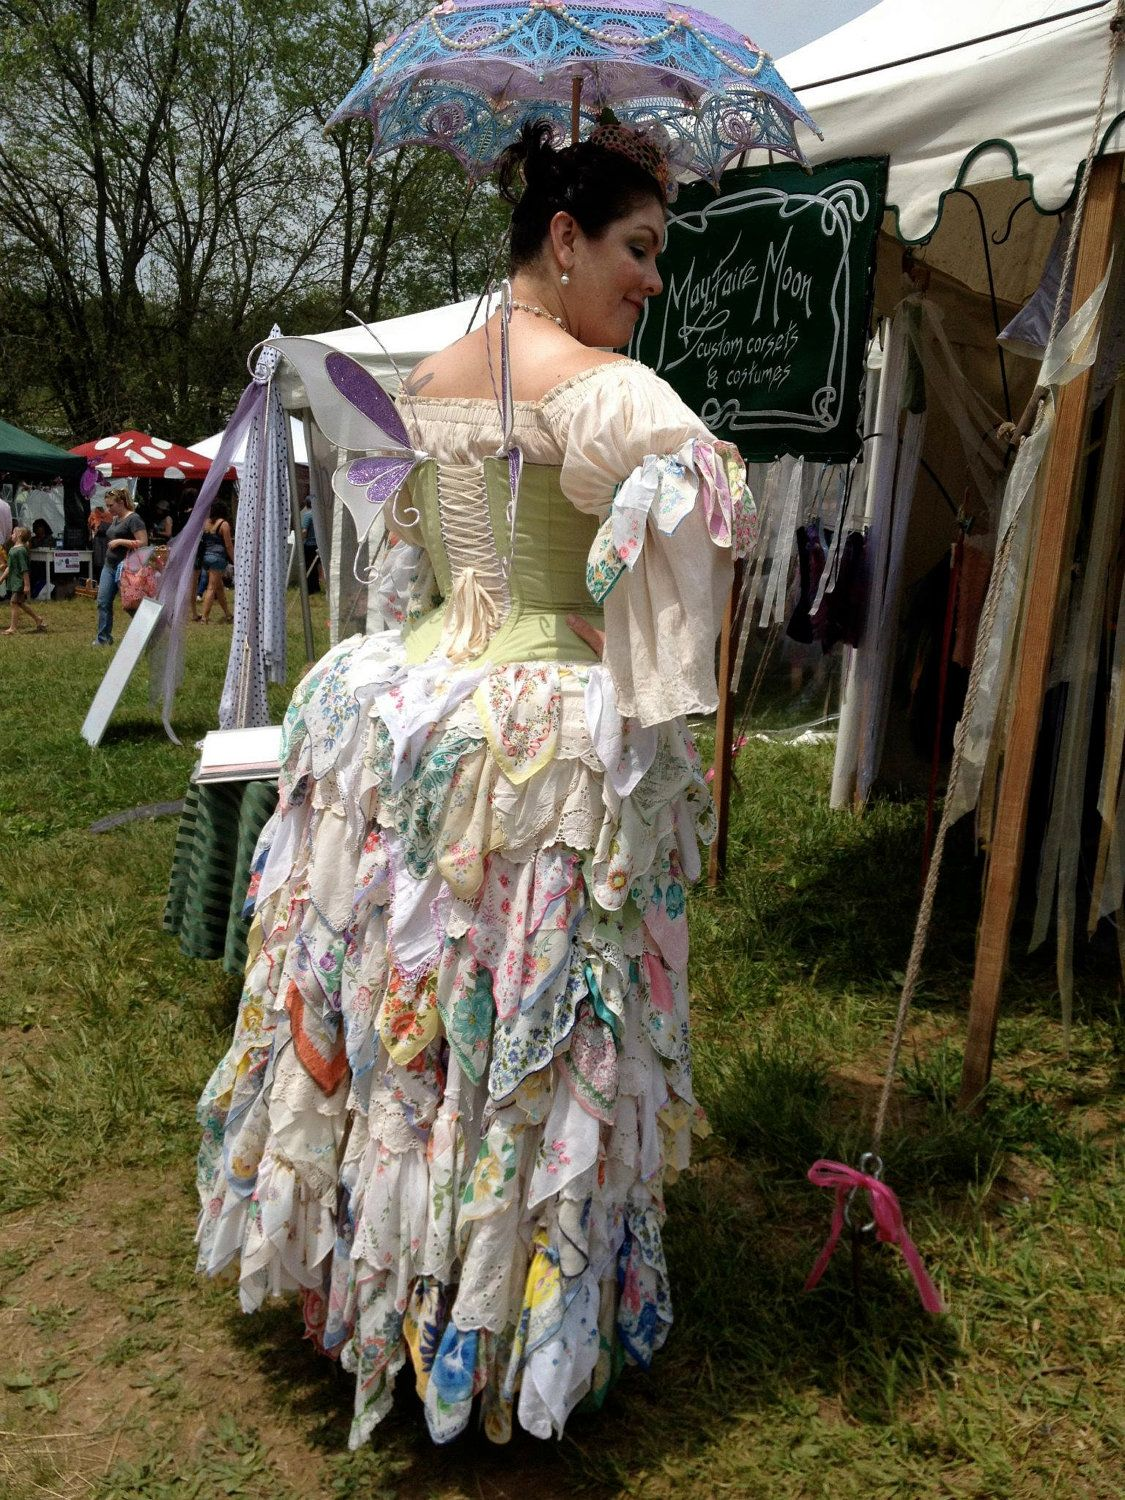 This handkerchief bustle inspired the wedding dress thread in Some Girls Do.